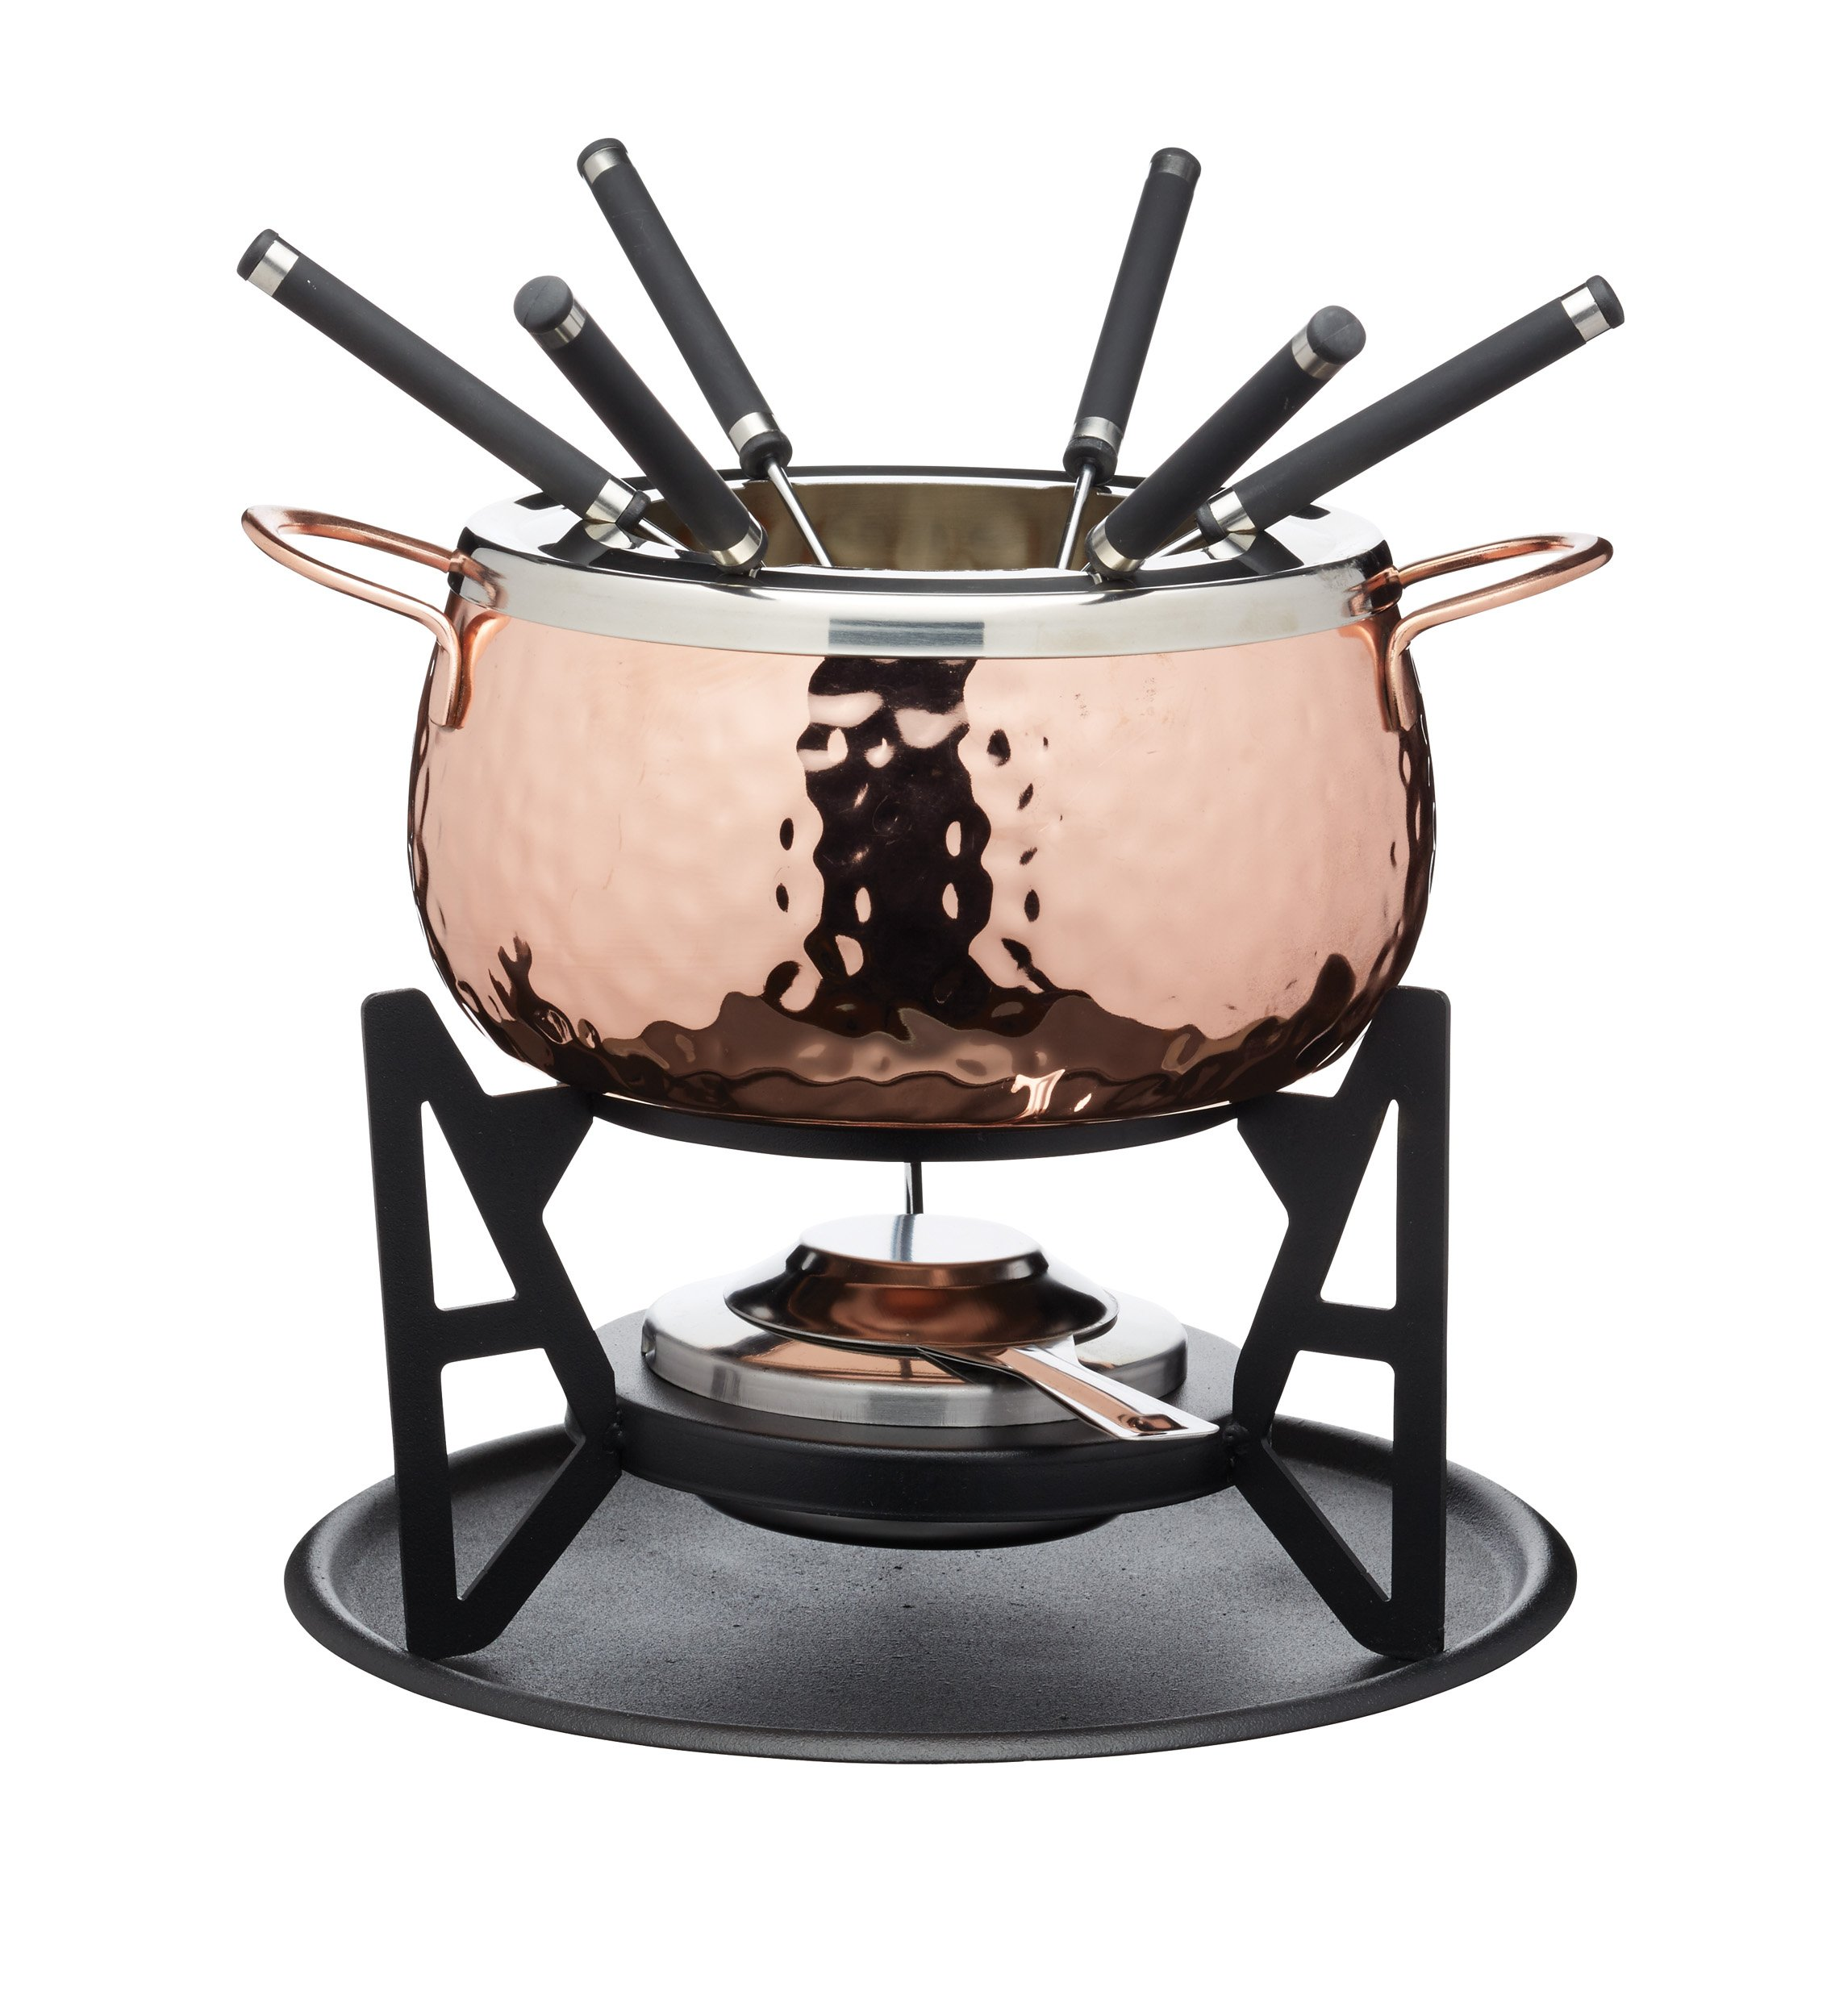 KitchenCraft Artesà Luxury 6-Person Swiss Fondue Set, Stainless Steel, Gift Box, Hammered Copper Finish by Artesa